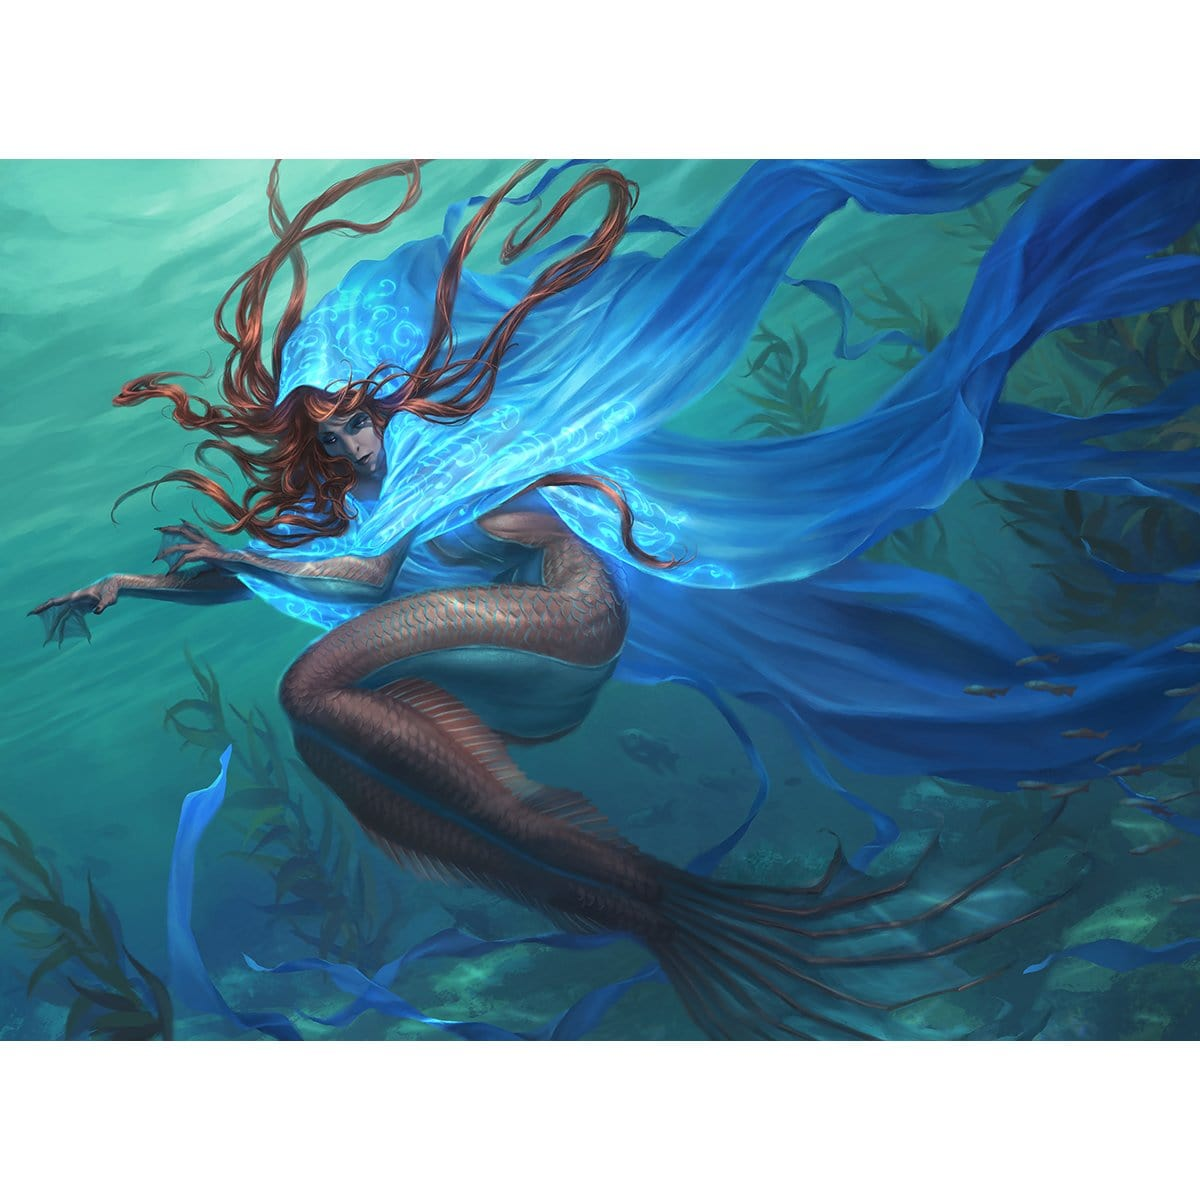 Mantle of Tides Print - Print - Original Magic Art - Accessories for Magic the Gathering and other card games